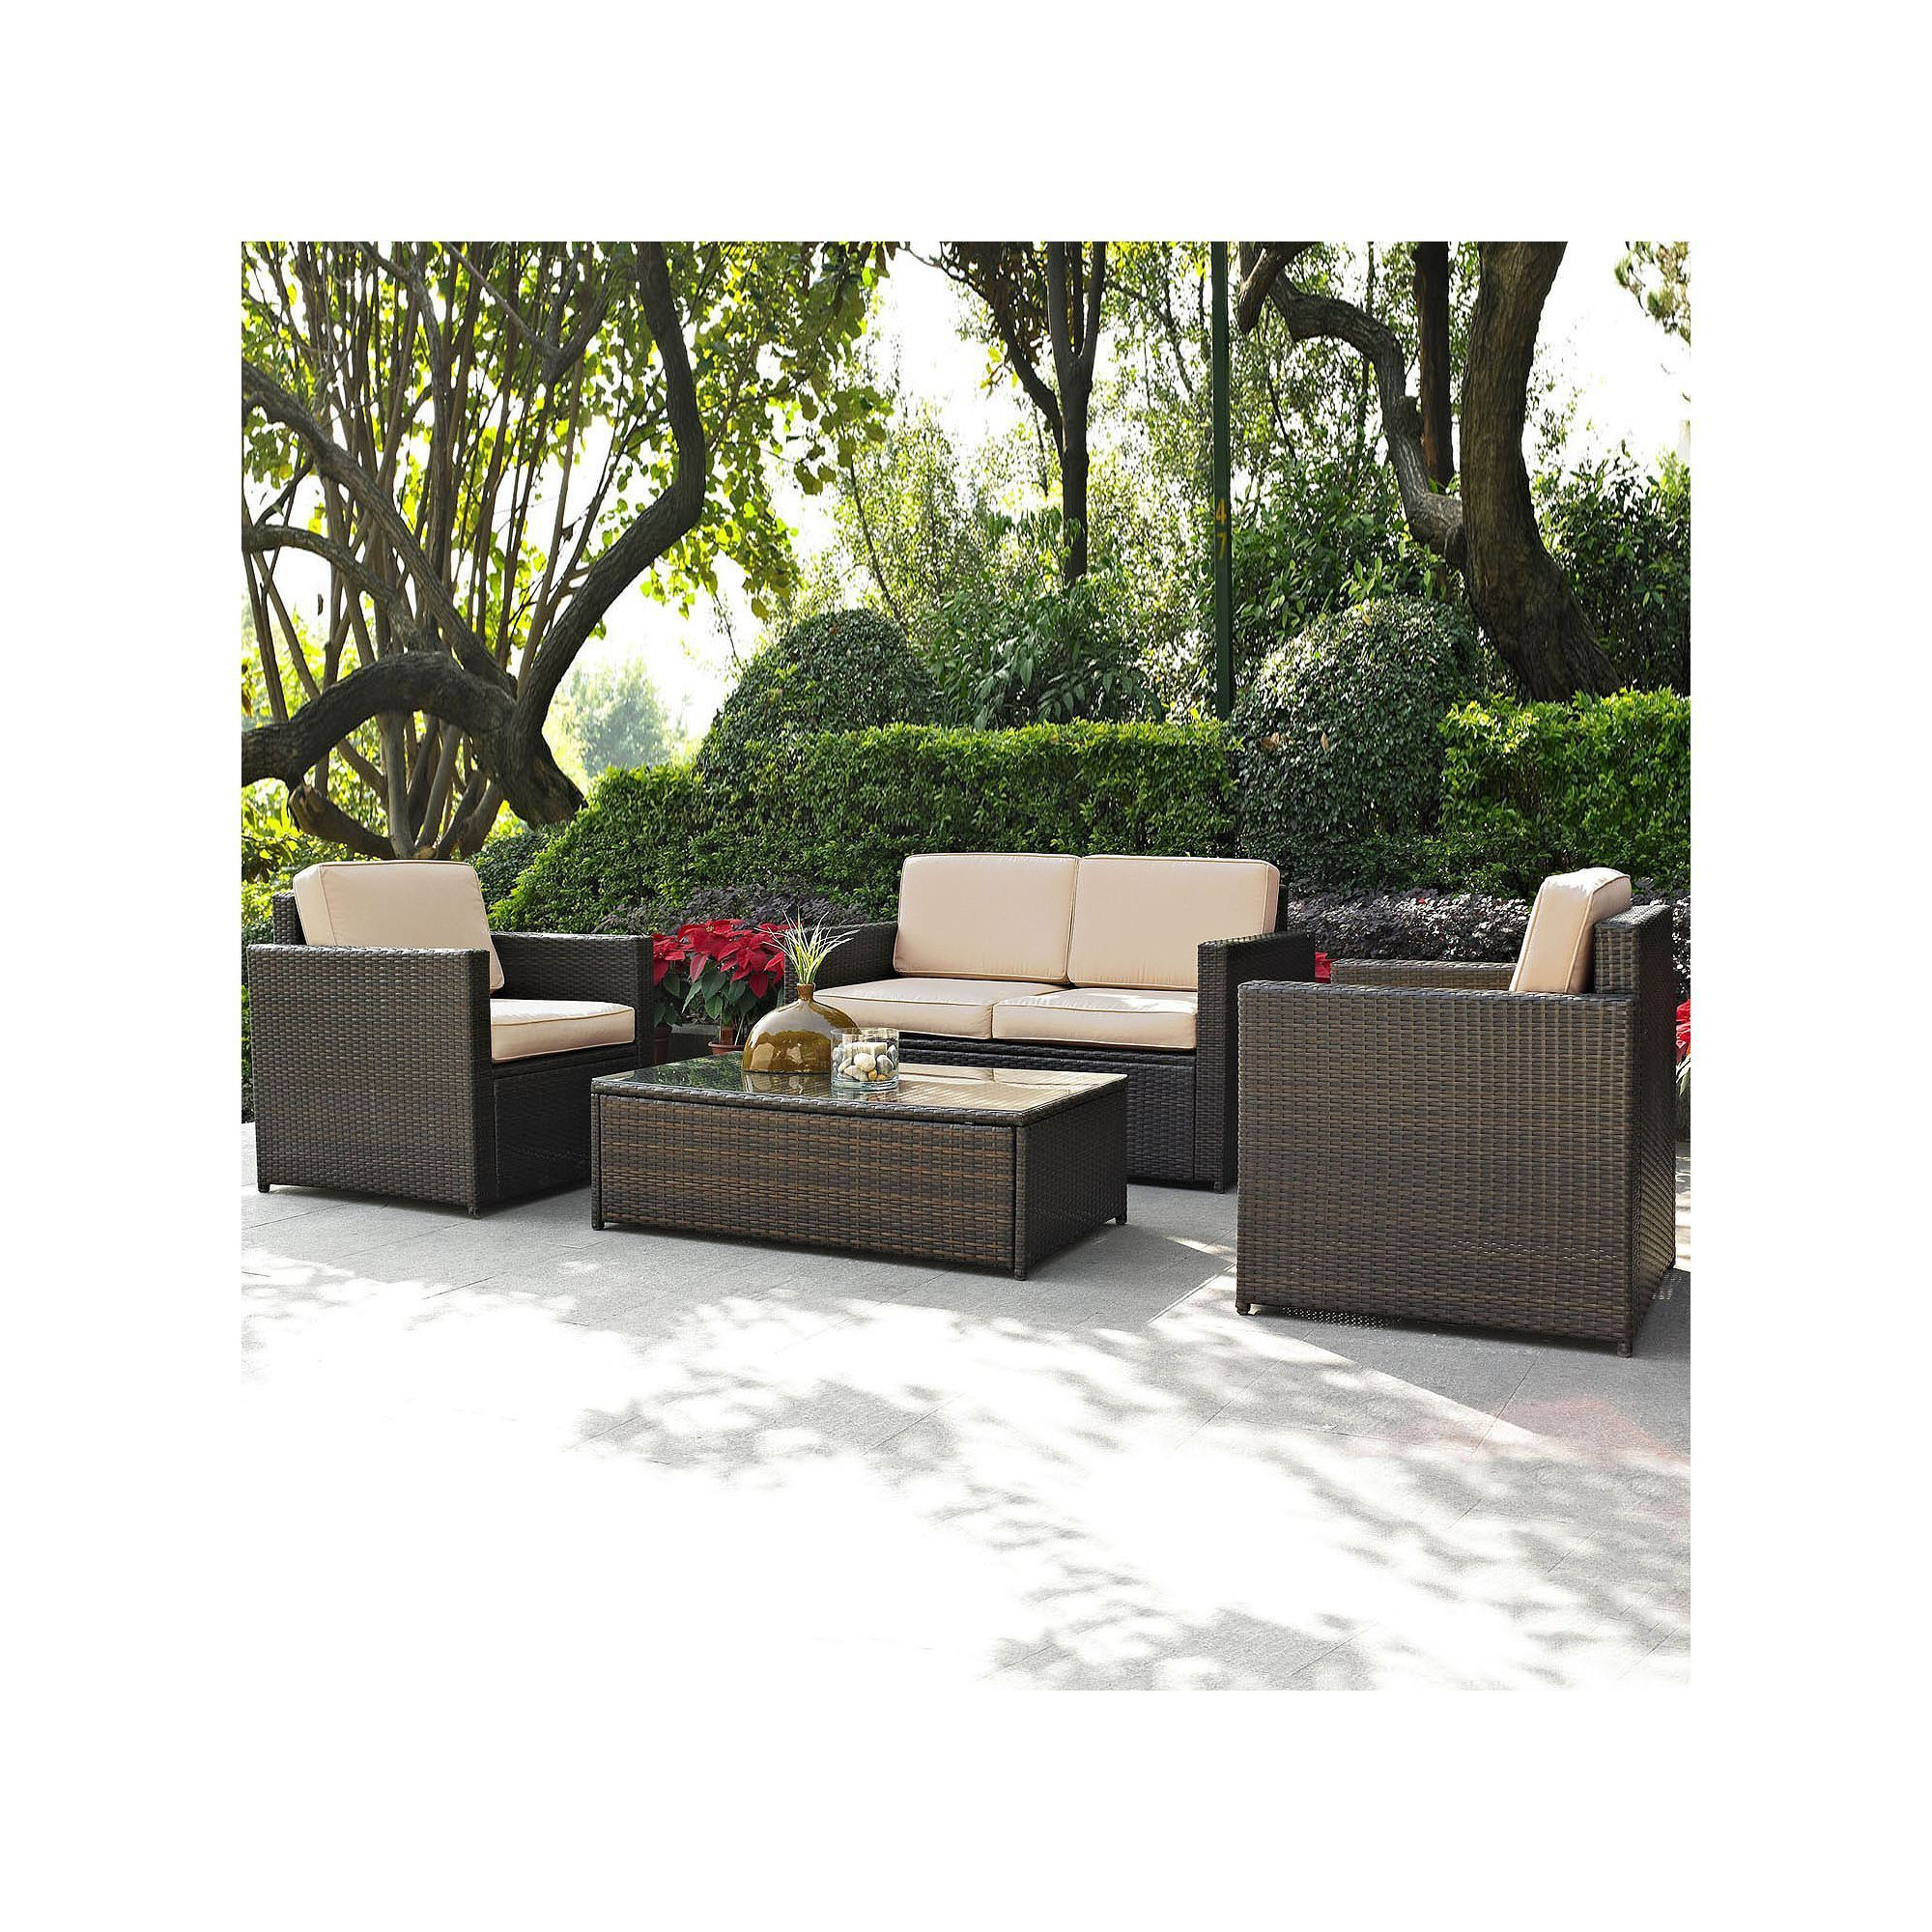 Outdoor Crosley Furniture Palm Harbor Patio Loveseat, Arm Chair & Coffee Table 4-piece Set, Brown